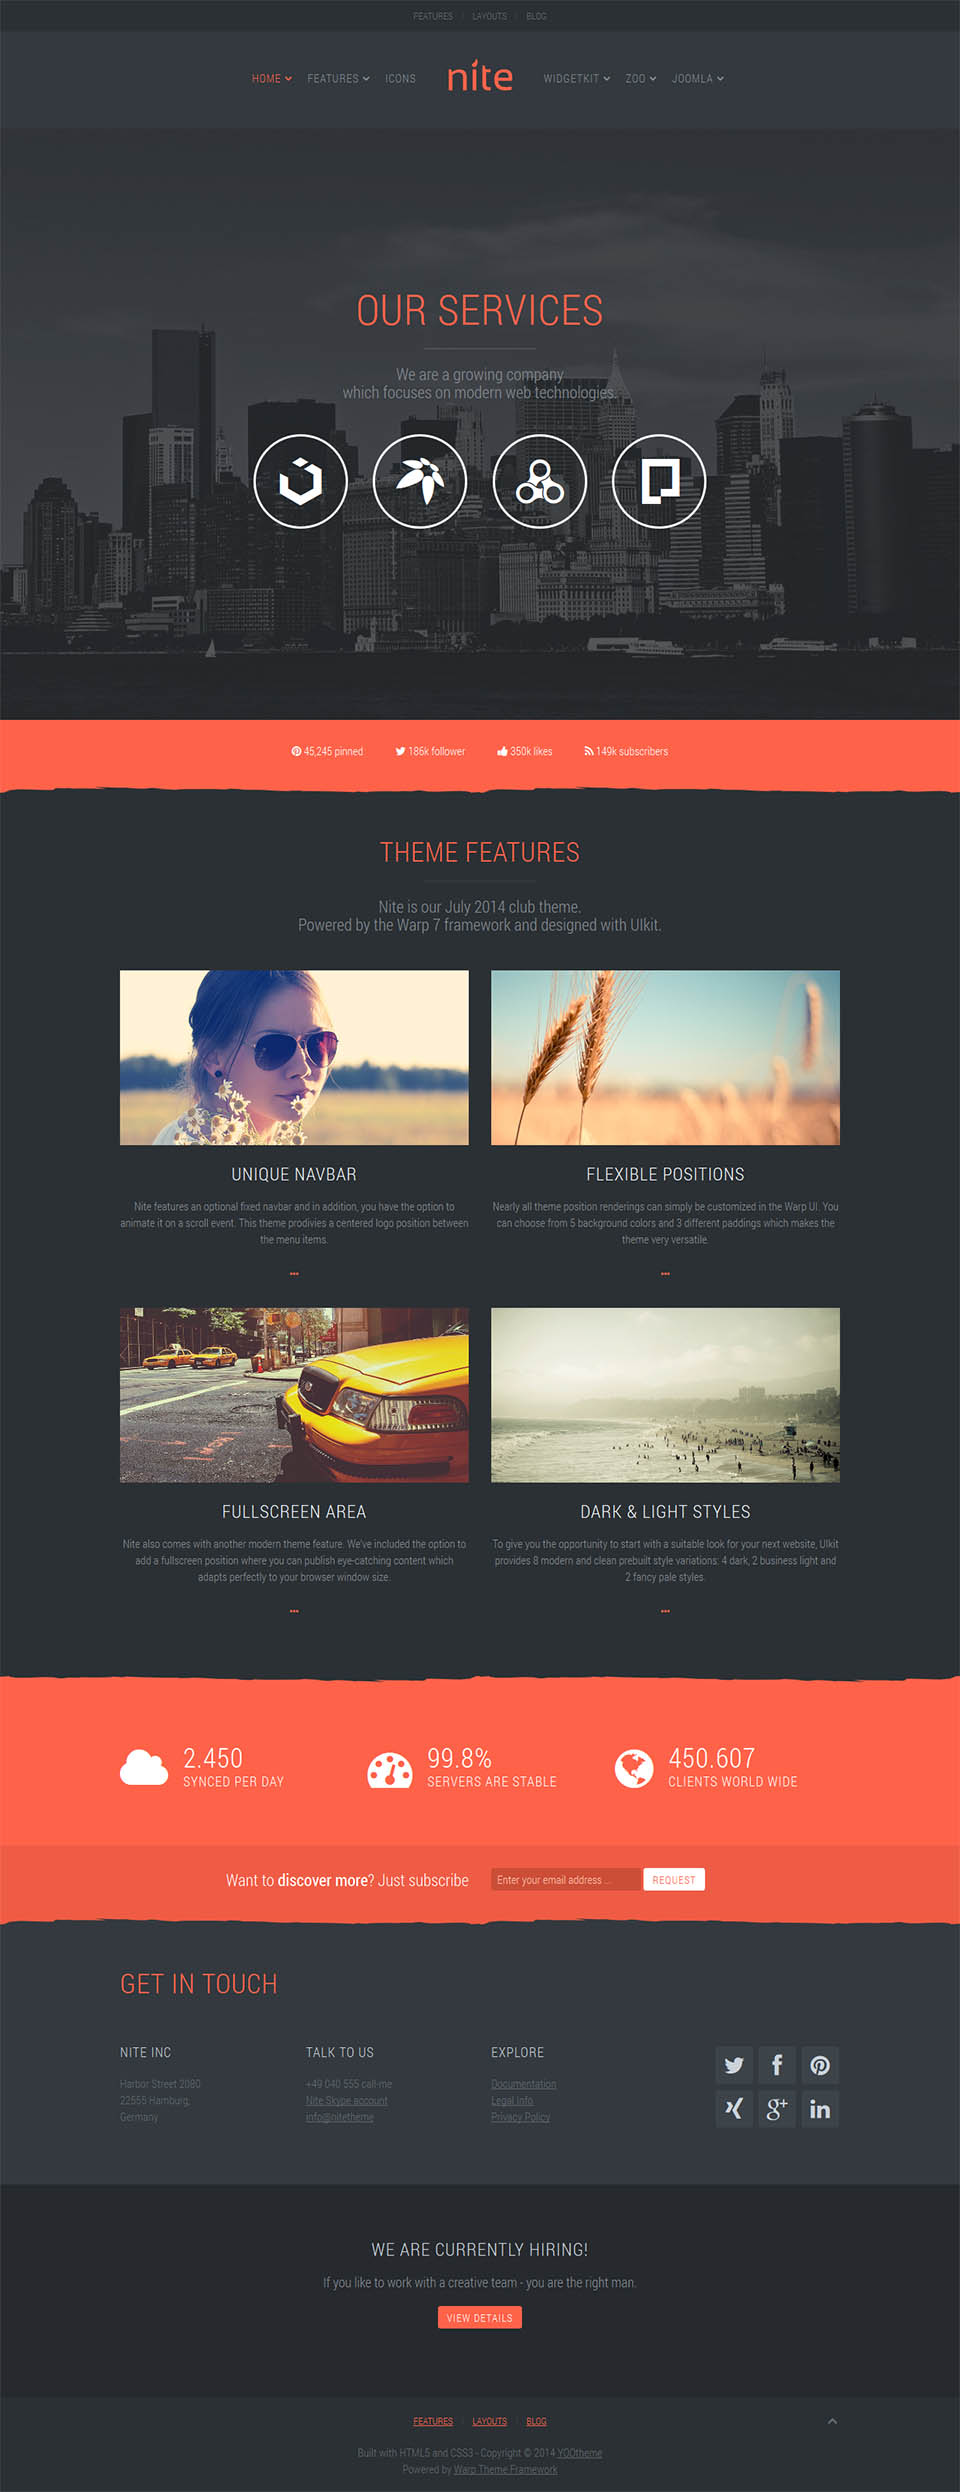 YOOtheme Nite v1.0.9 - corporate template for Joomla